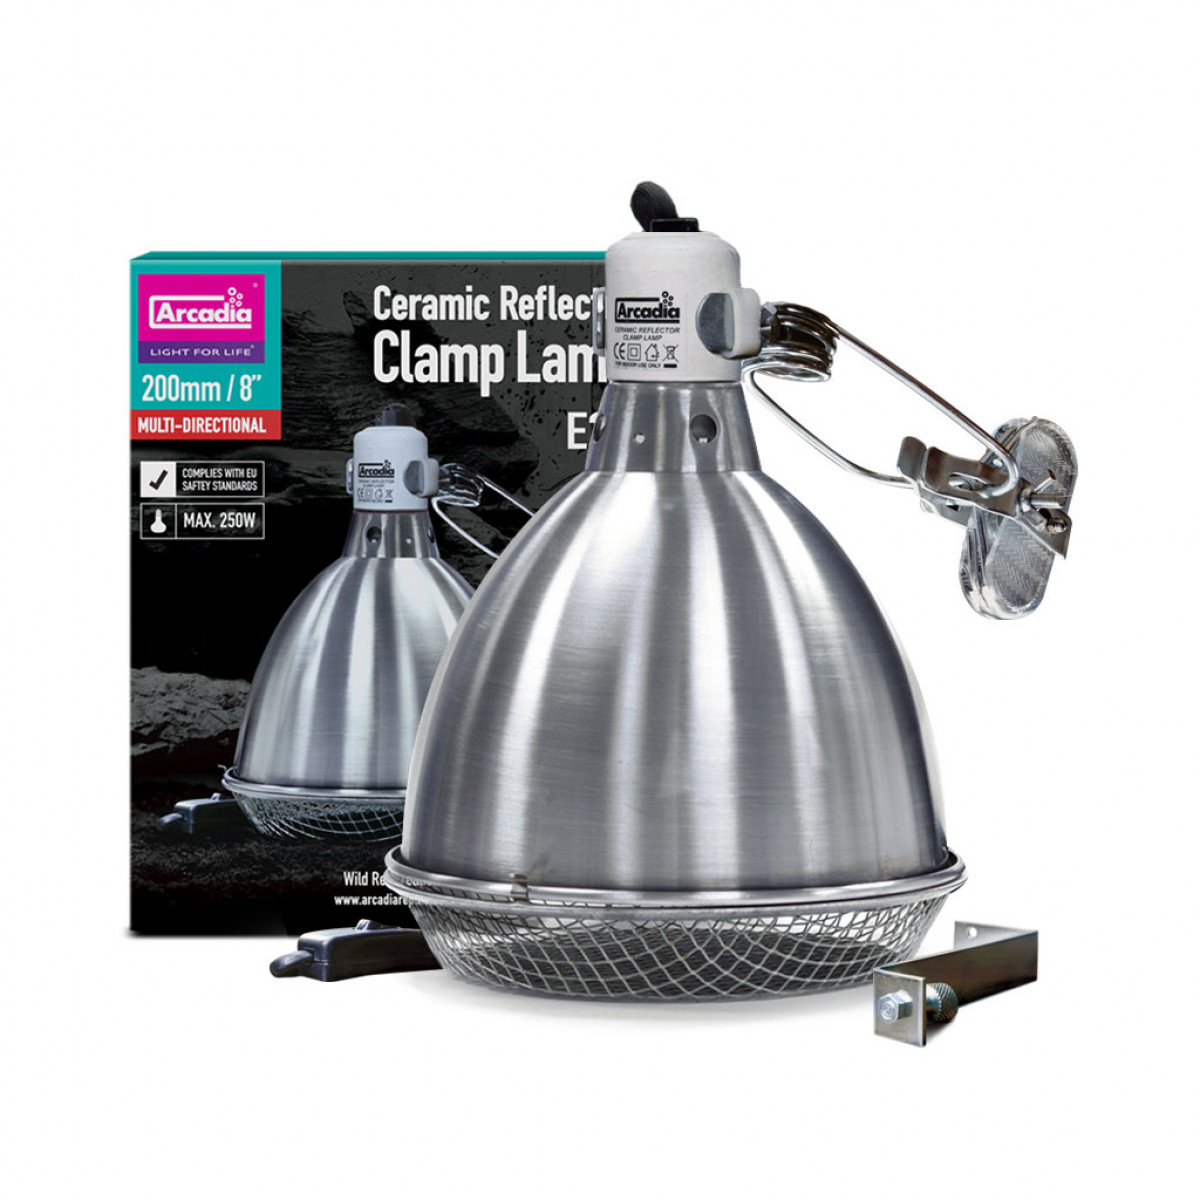 Arcadia Ceramic Reflector Clamp Lamp (E27), 200mm - Stainless Steel